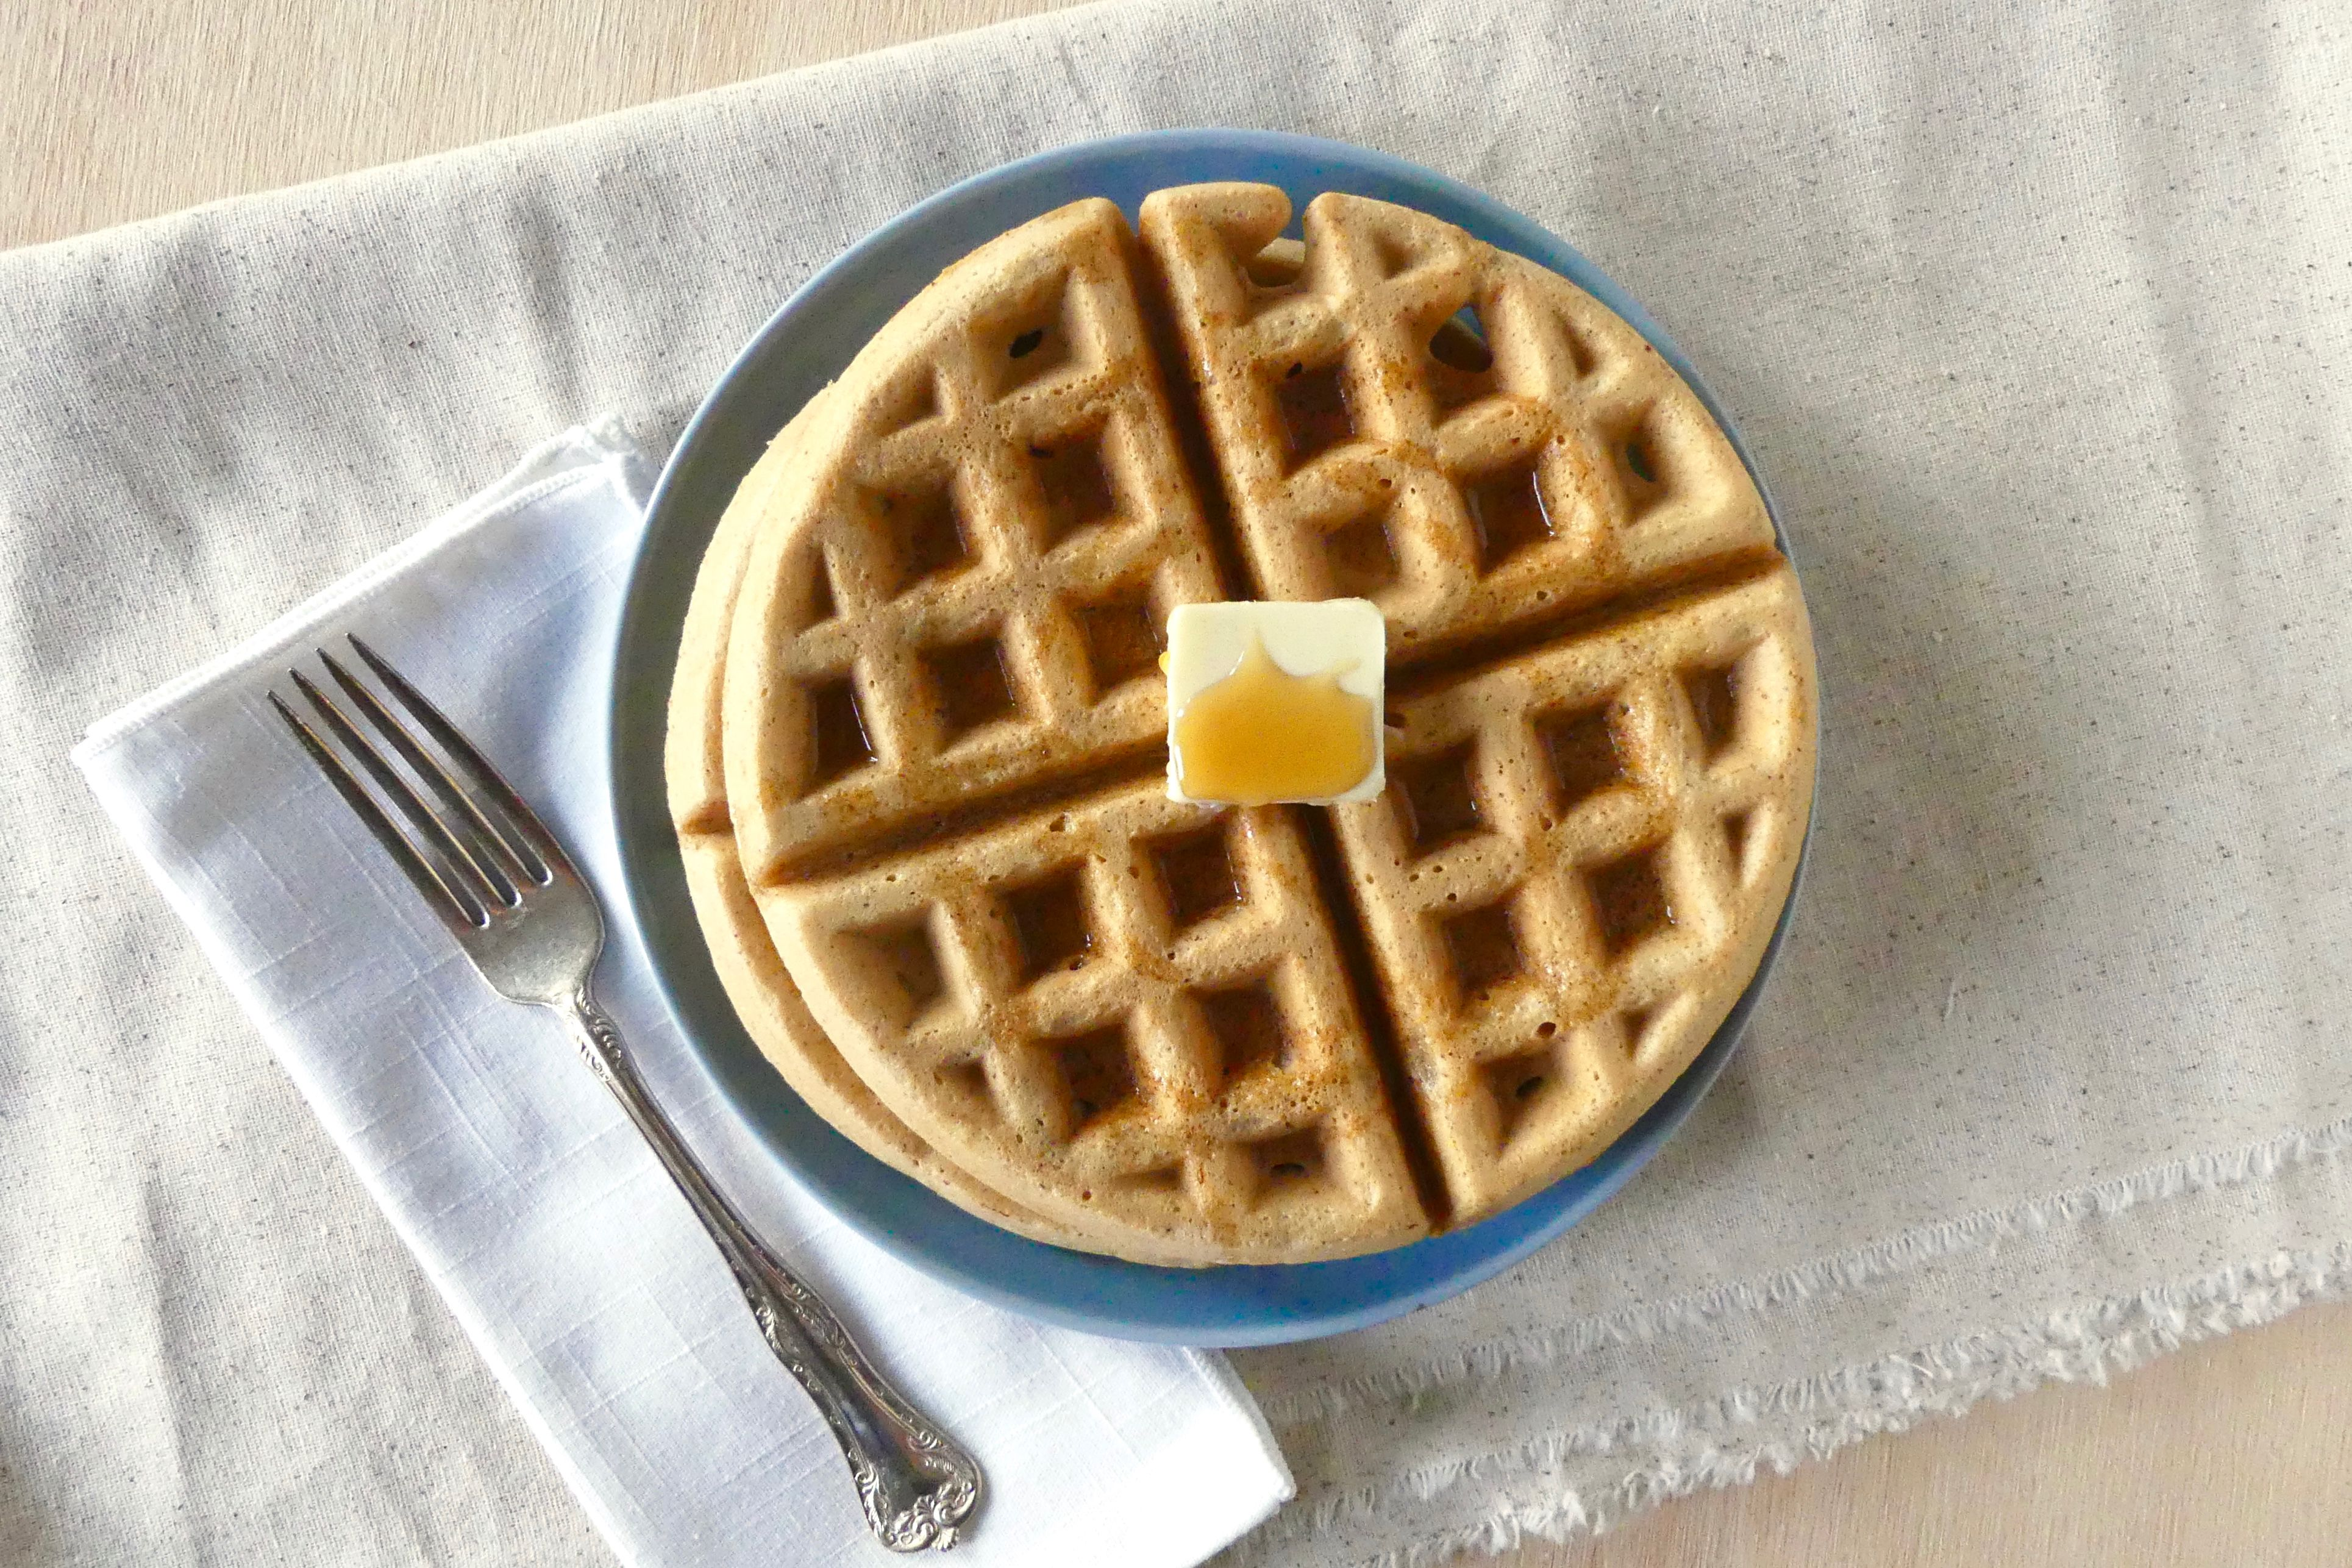 Keto Waffles Are Here to Save You From Boring Gluten-free Breakfasts